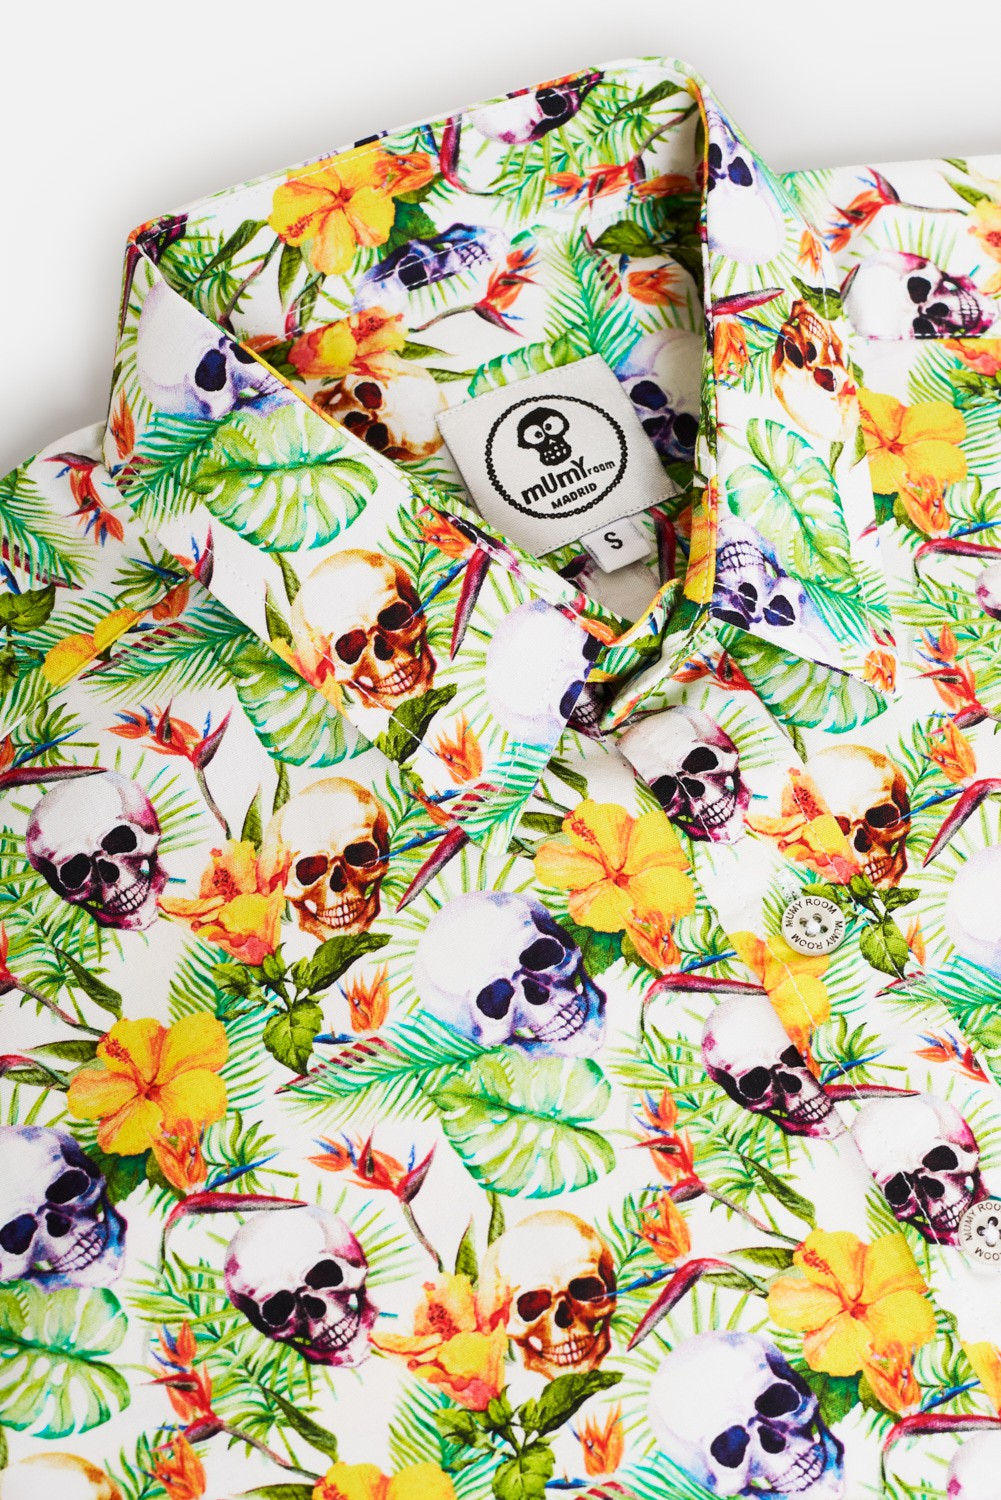 KID'S PRINTED SHIRT HIDDEN SKULL